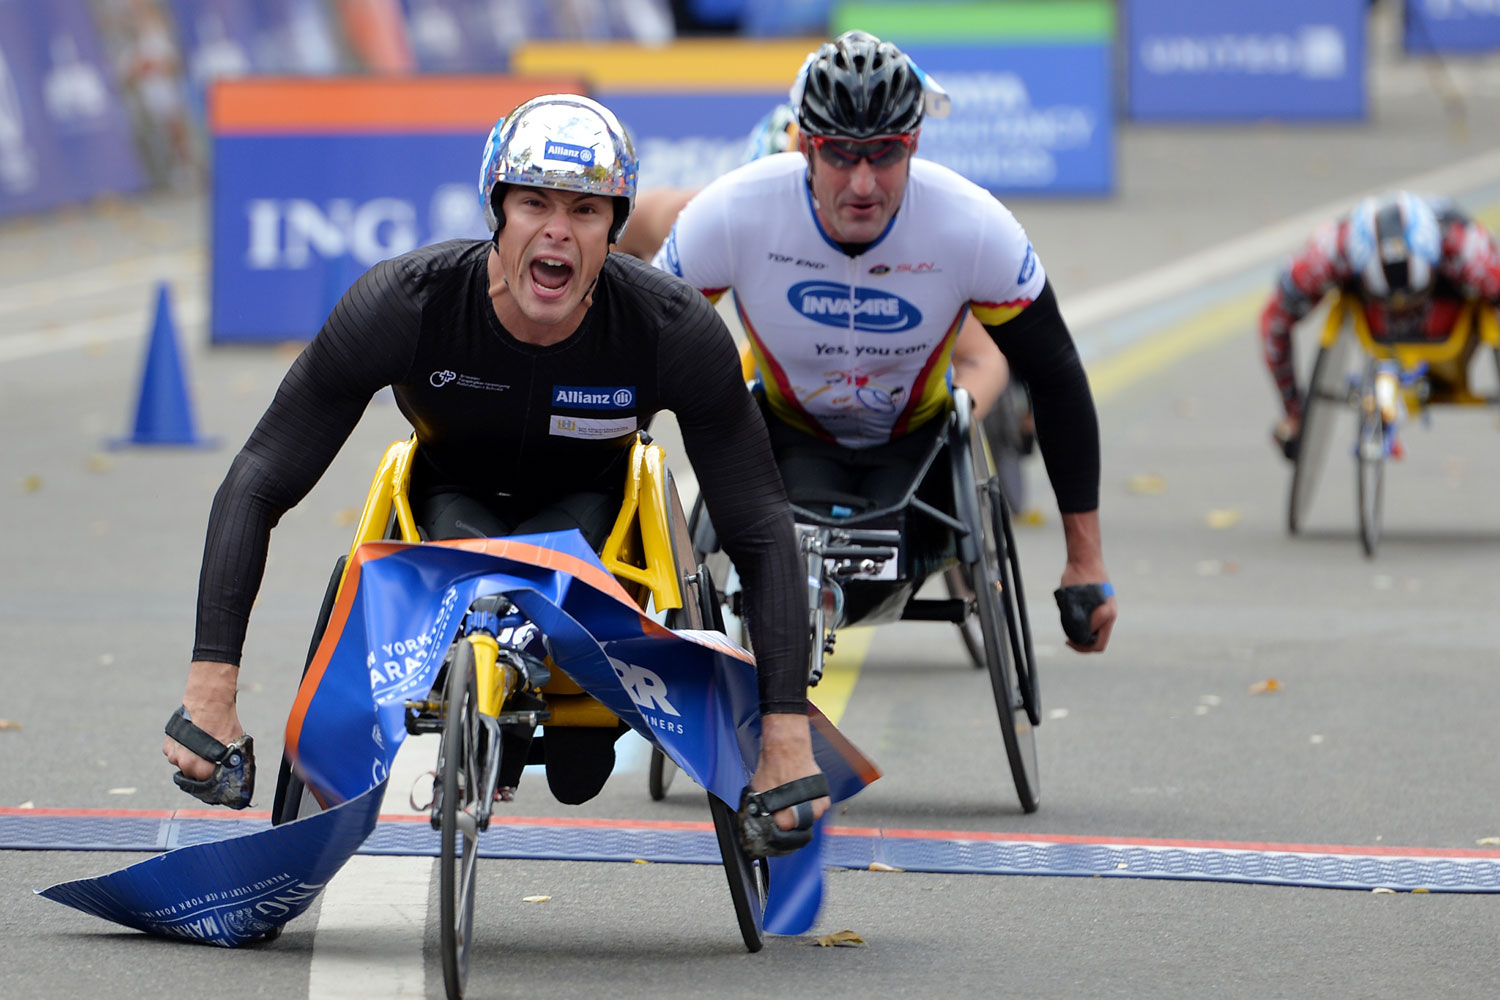 Marcel Hug crosses the finish line to win the Men's Wheelchair Division of the New York City Marathon on November 3, 2013.